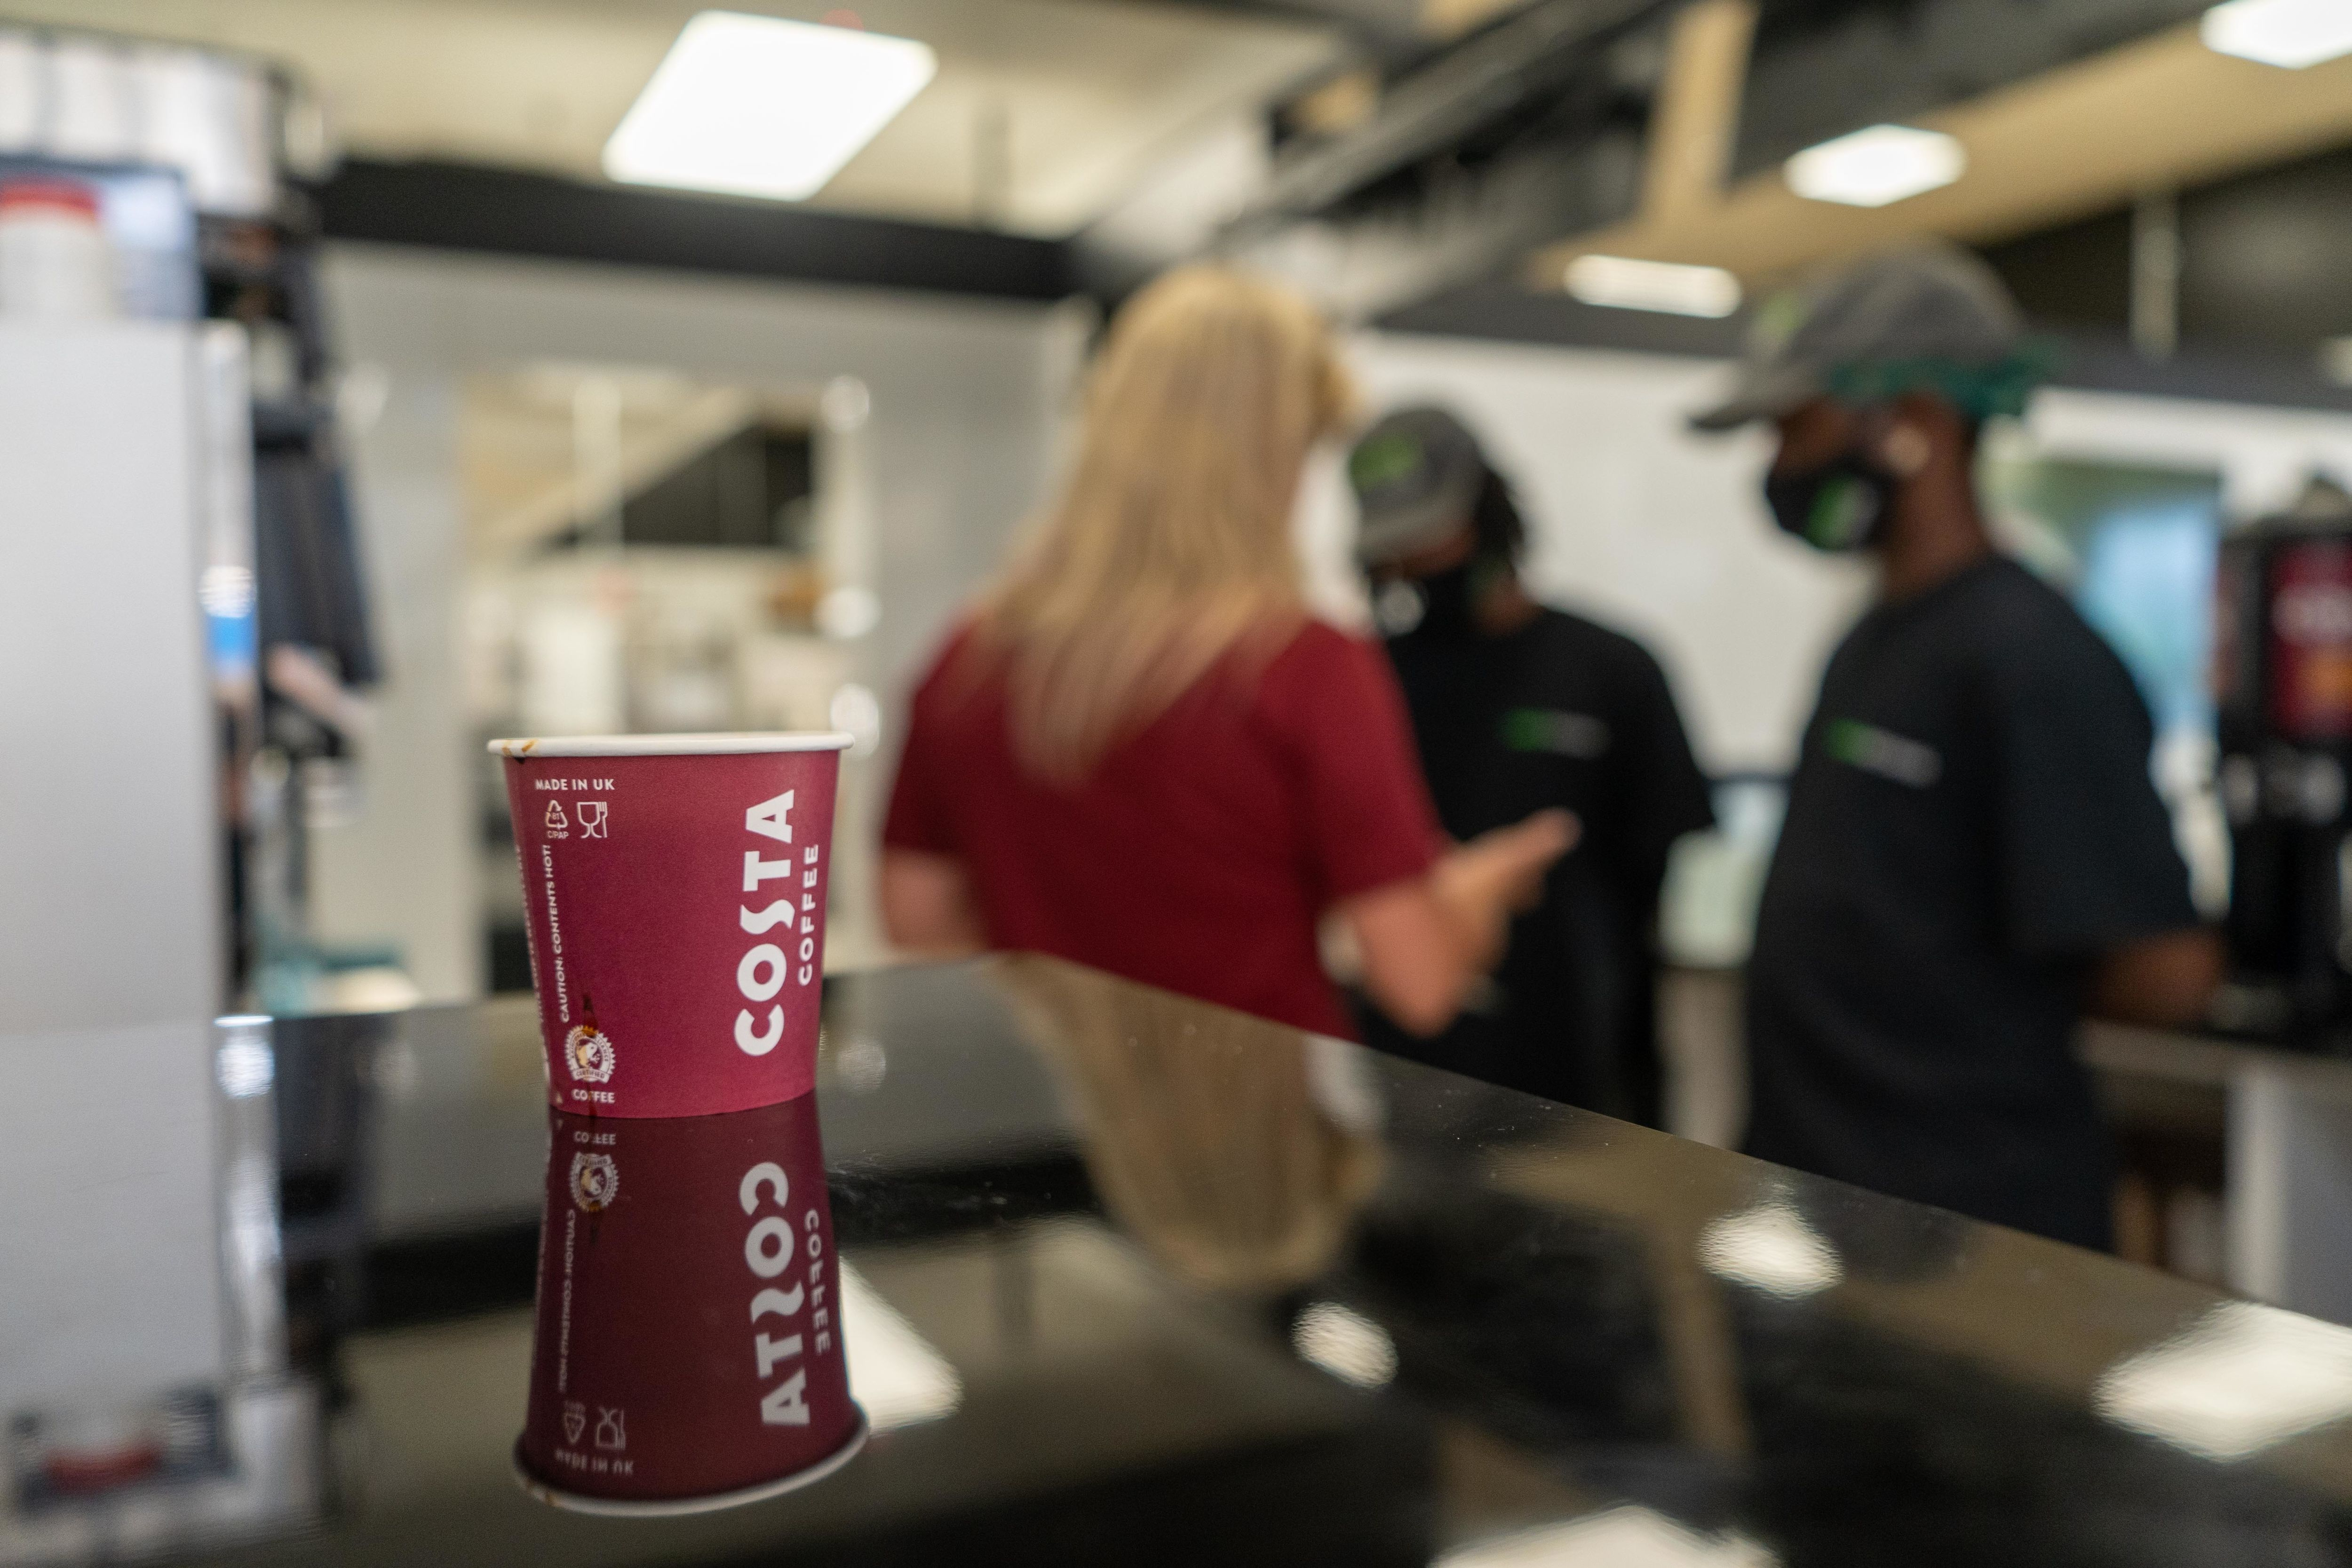 Costa Coffee cup and employees